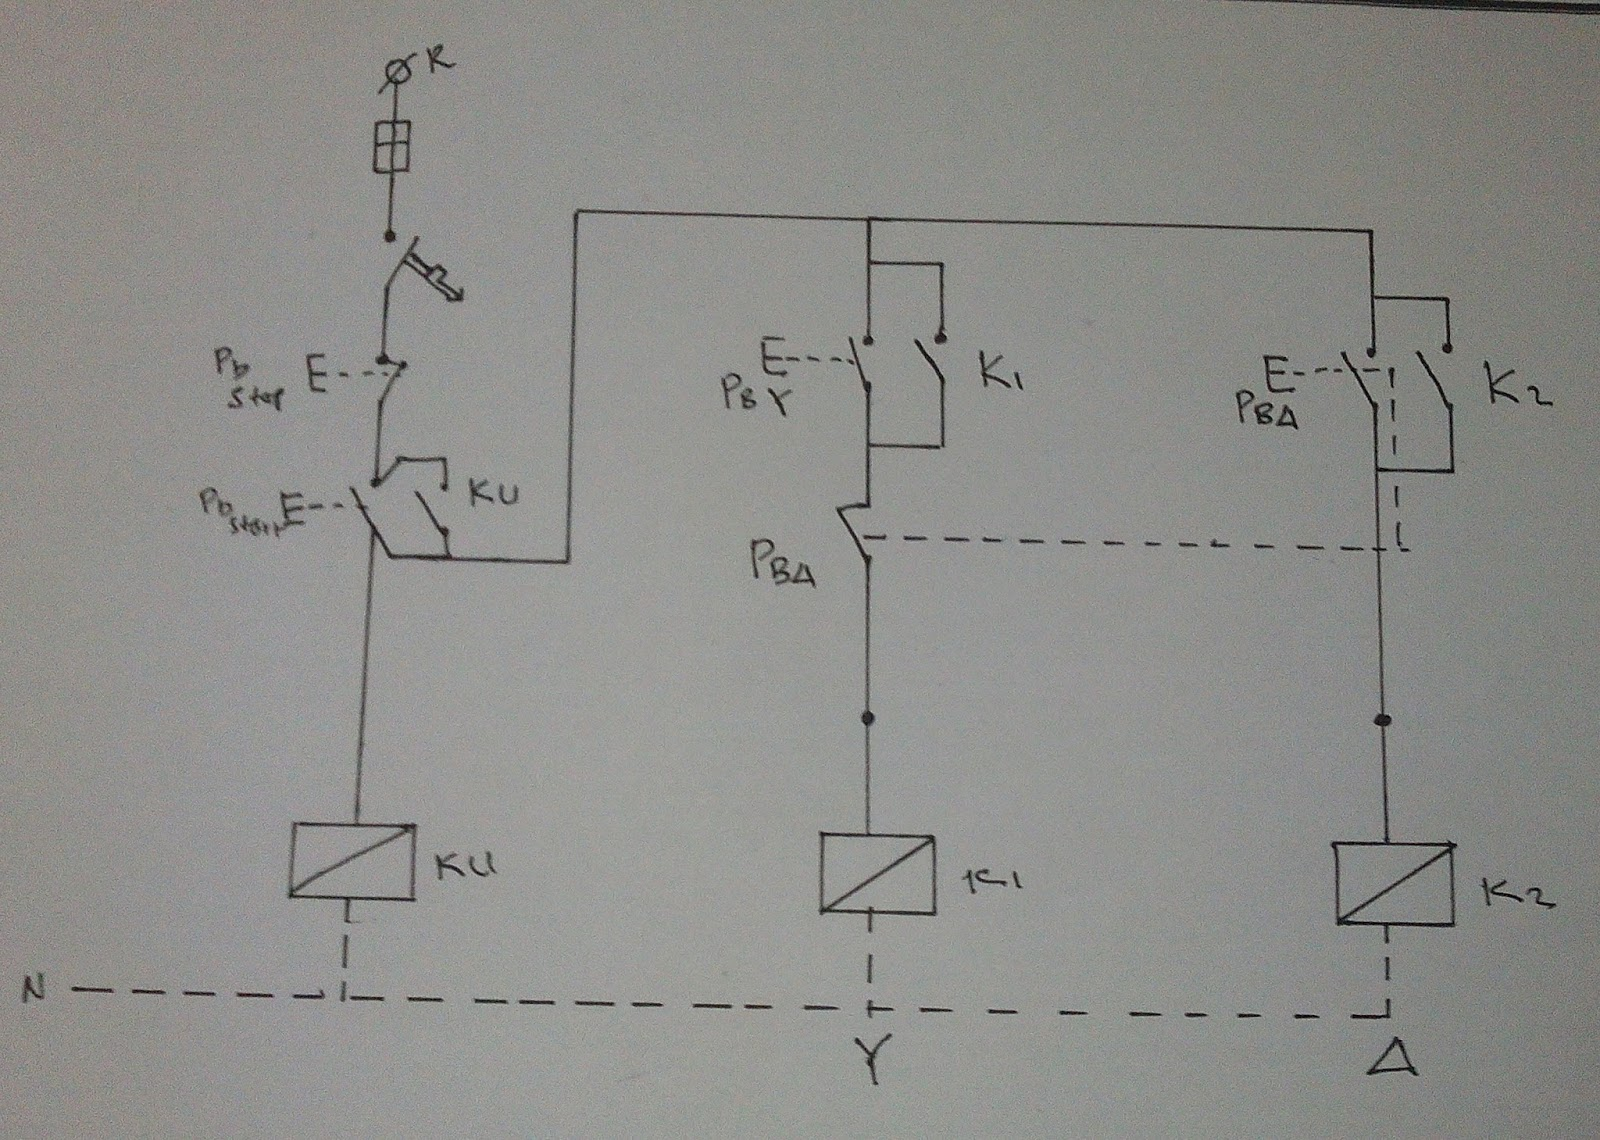 small resolution of reversing contactor wiring diagram 3 phase 220